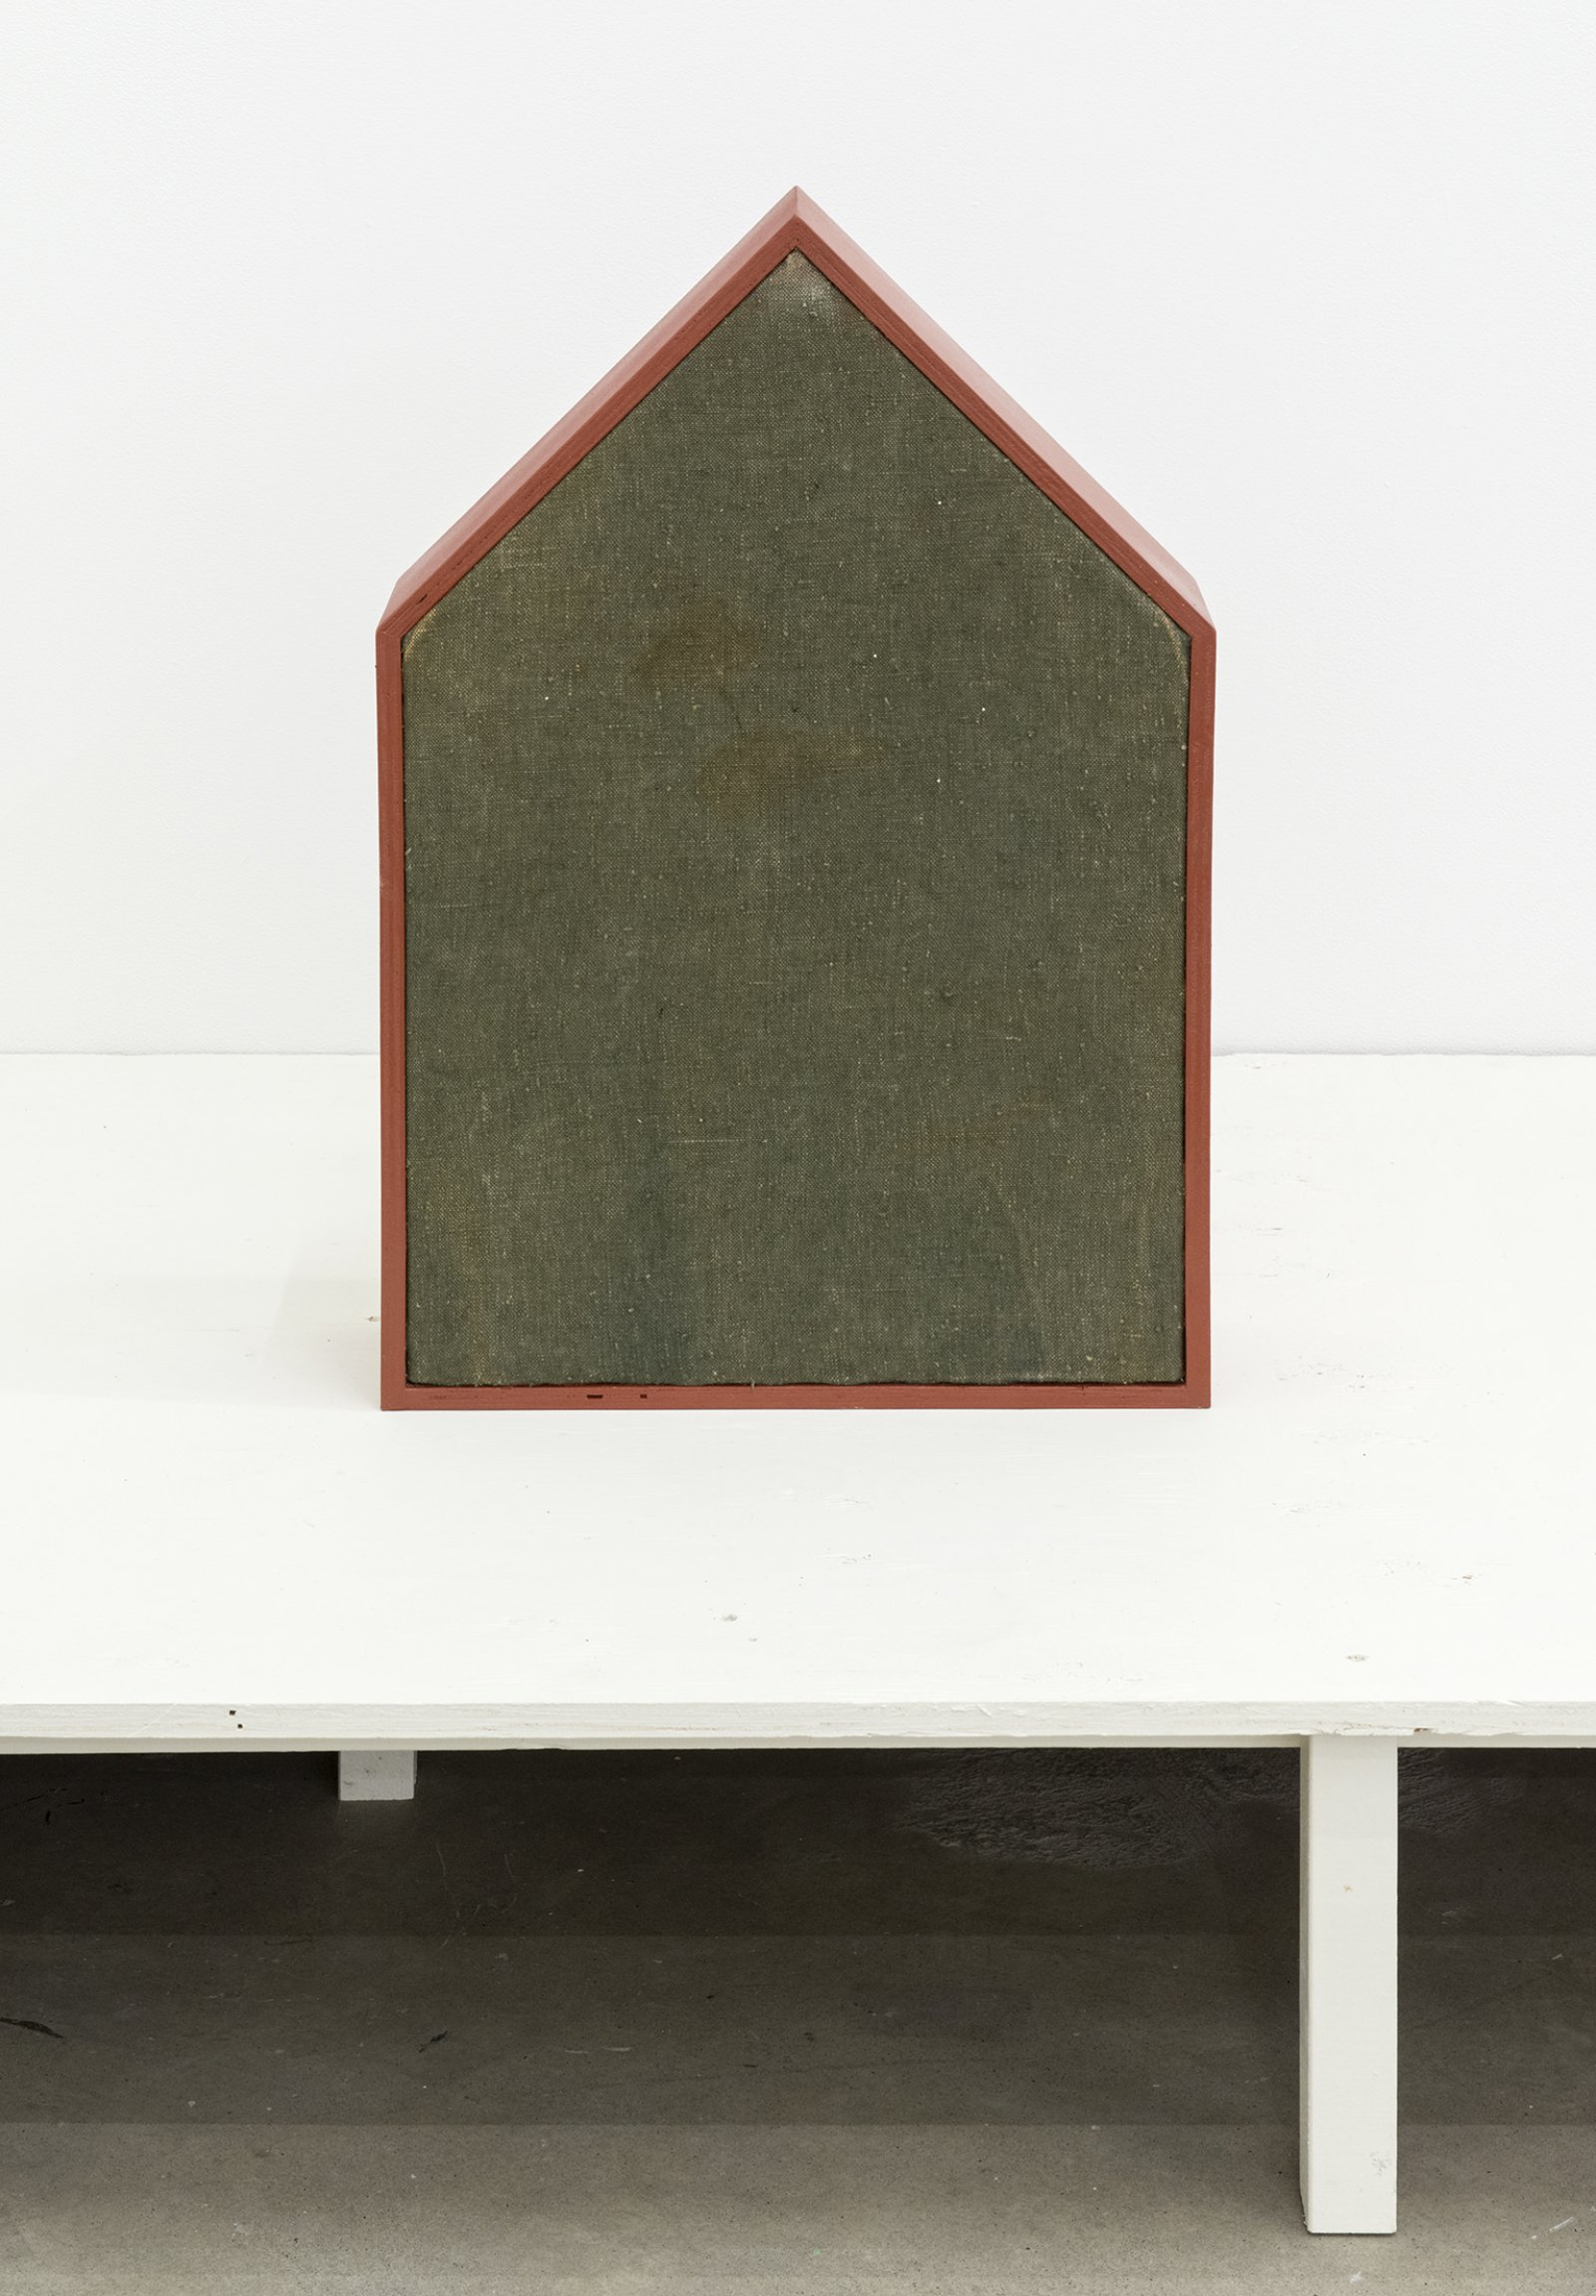 Gareth Moore, WP-04 sP, 2013, hay, wood, guitar case fabric, paint, twine, 24 x 16 x 8 in. (61 x 41 x 20 cm)   by Ashes Withyman